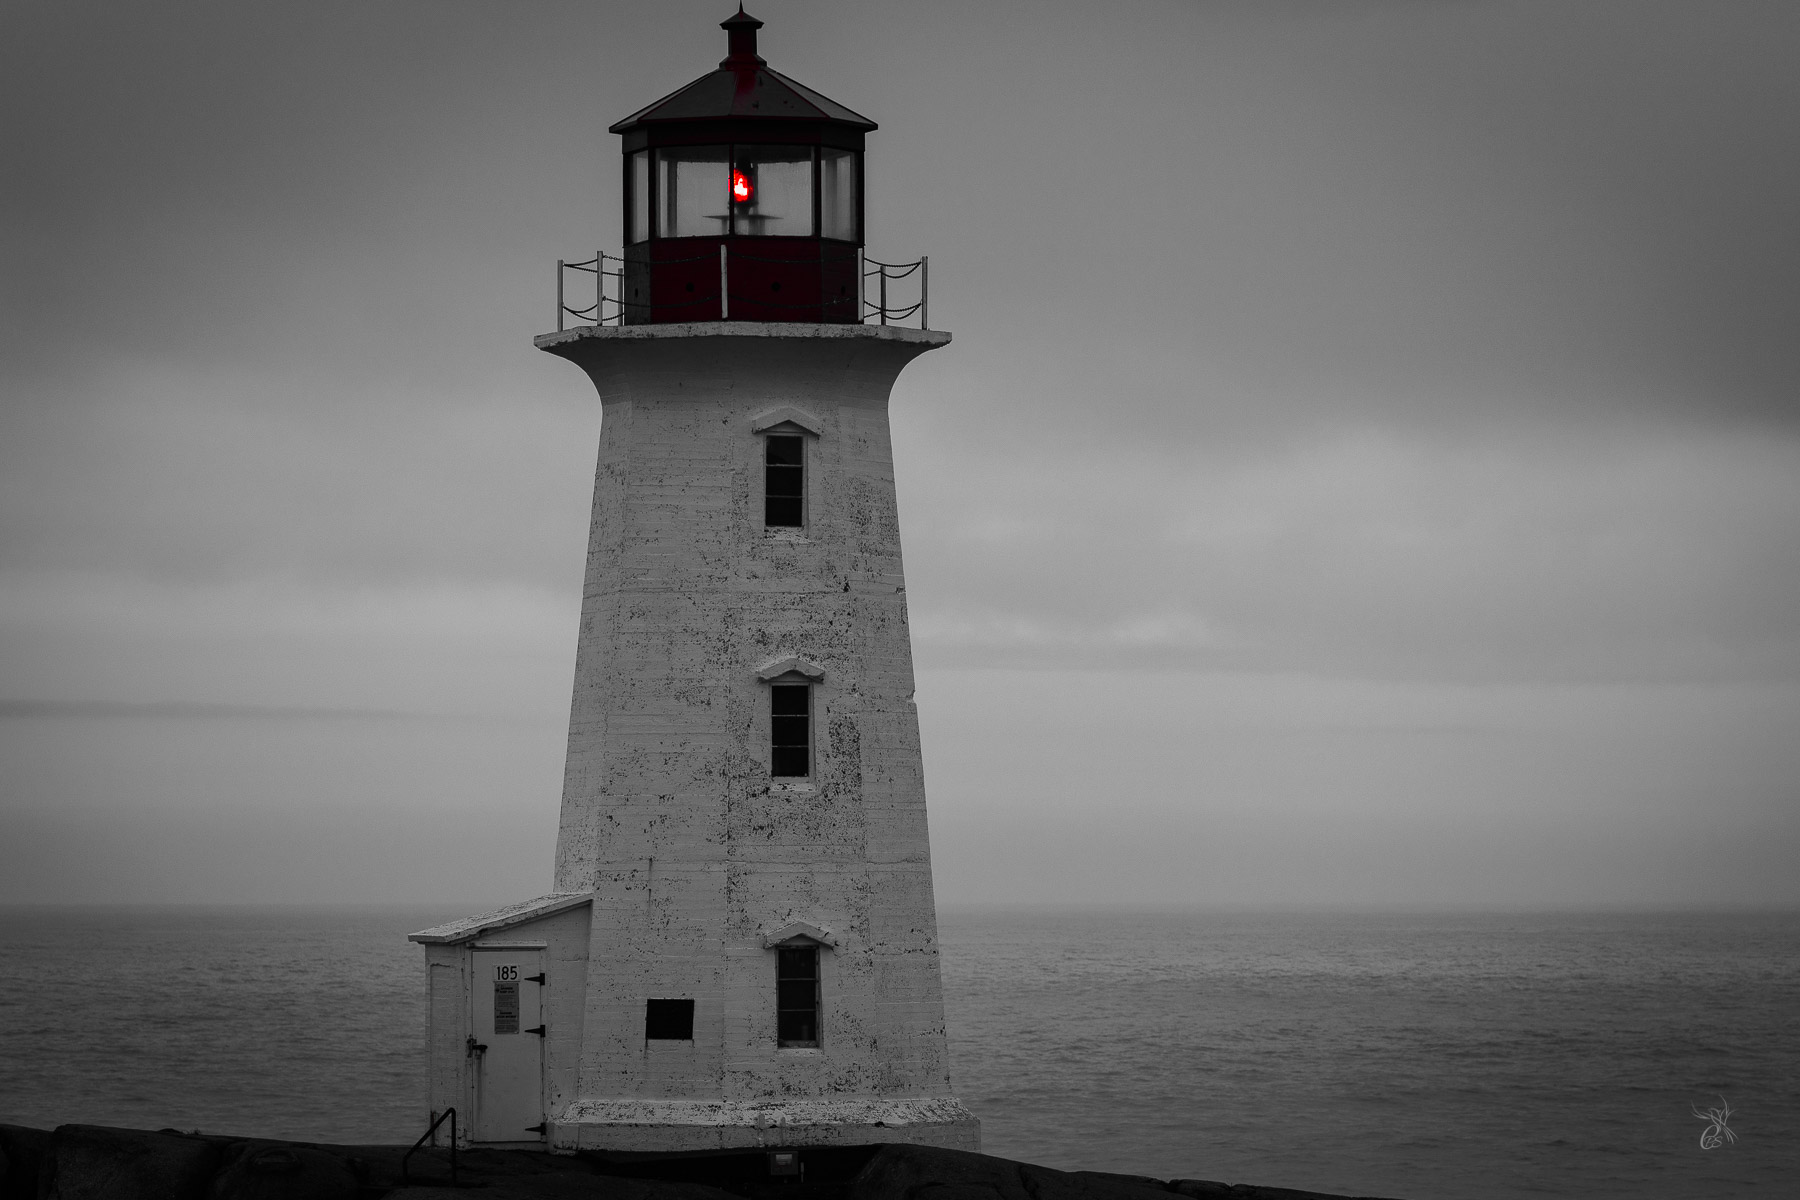 Nova Scotia: Red Light Lighthouse